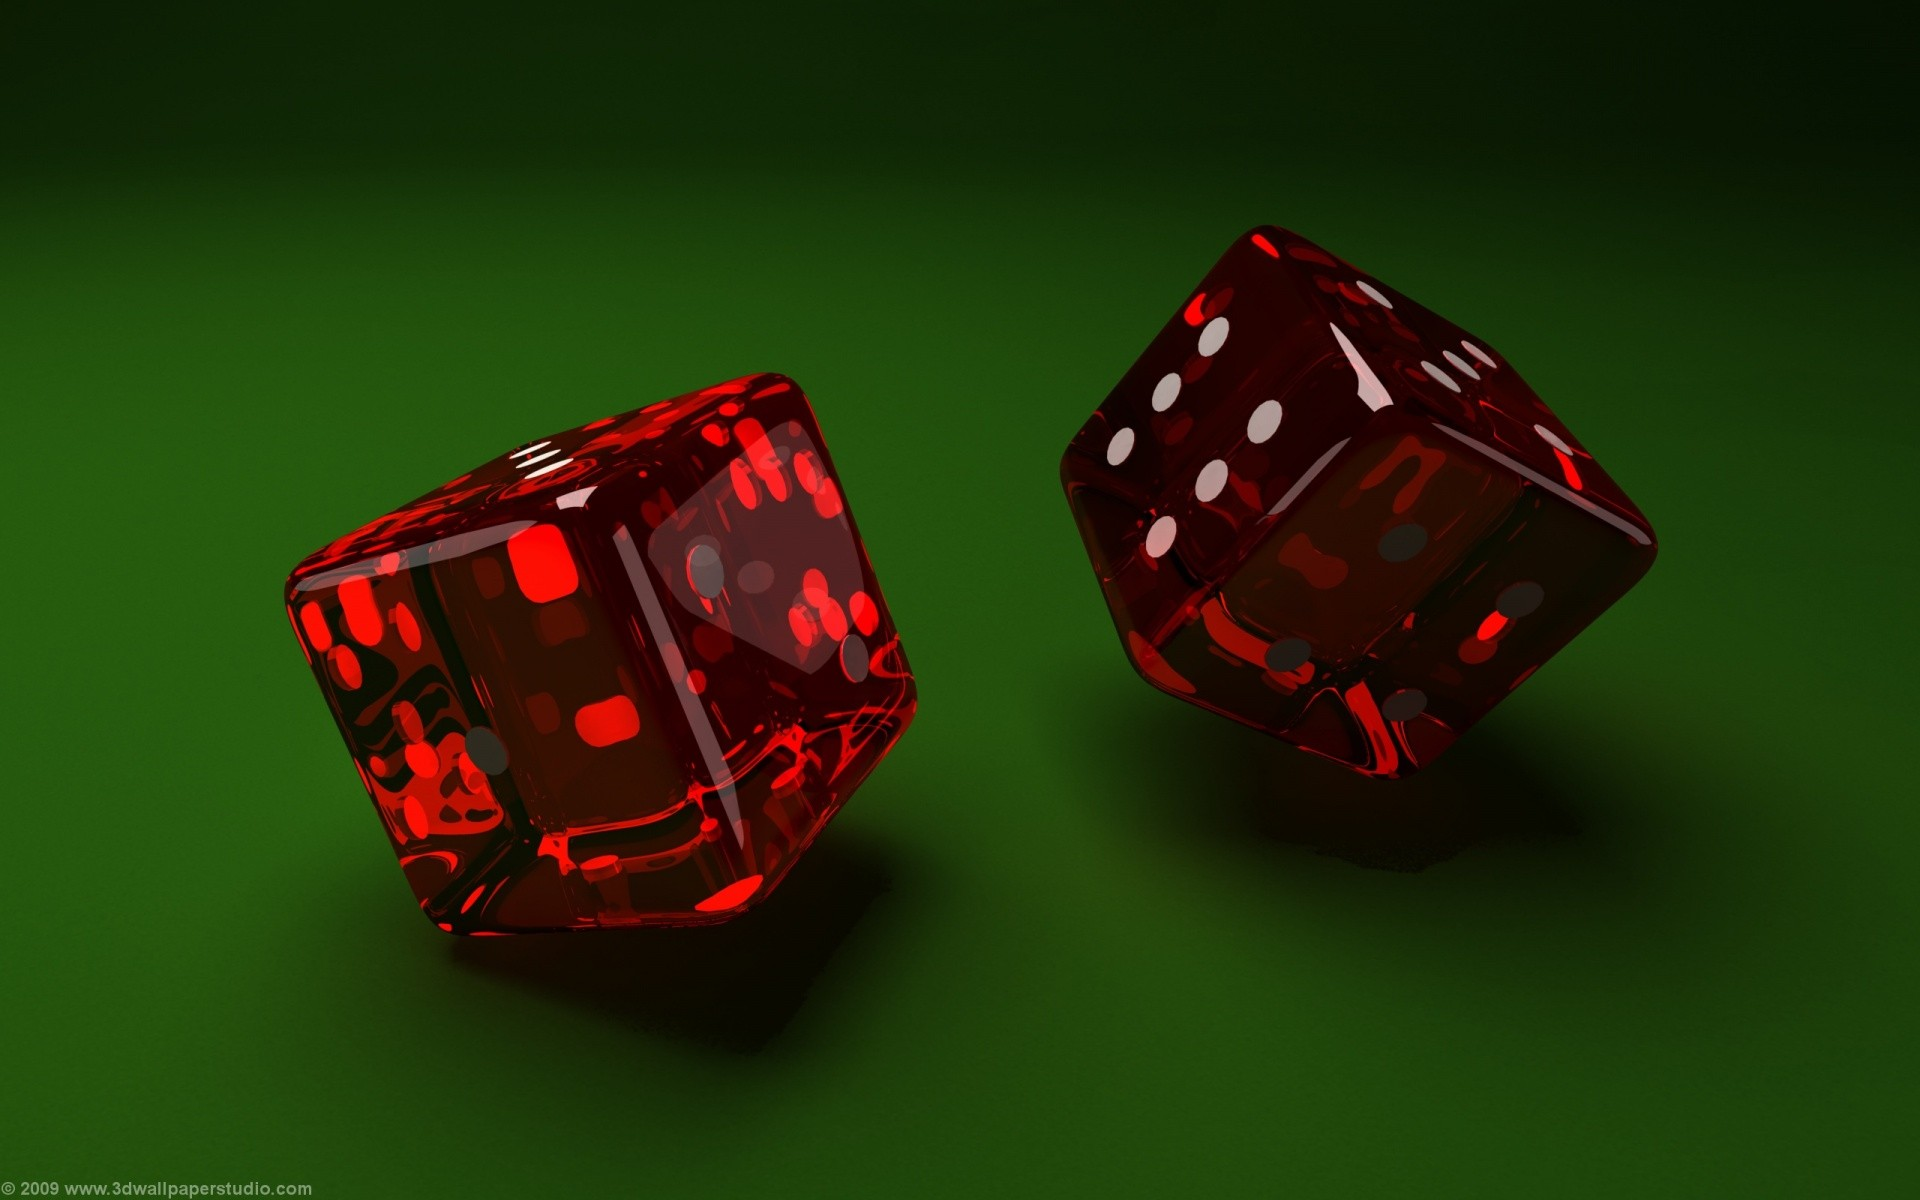 Reasons Why Paddy Power Is A Favorite Gaming Provider For Online Betting